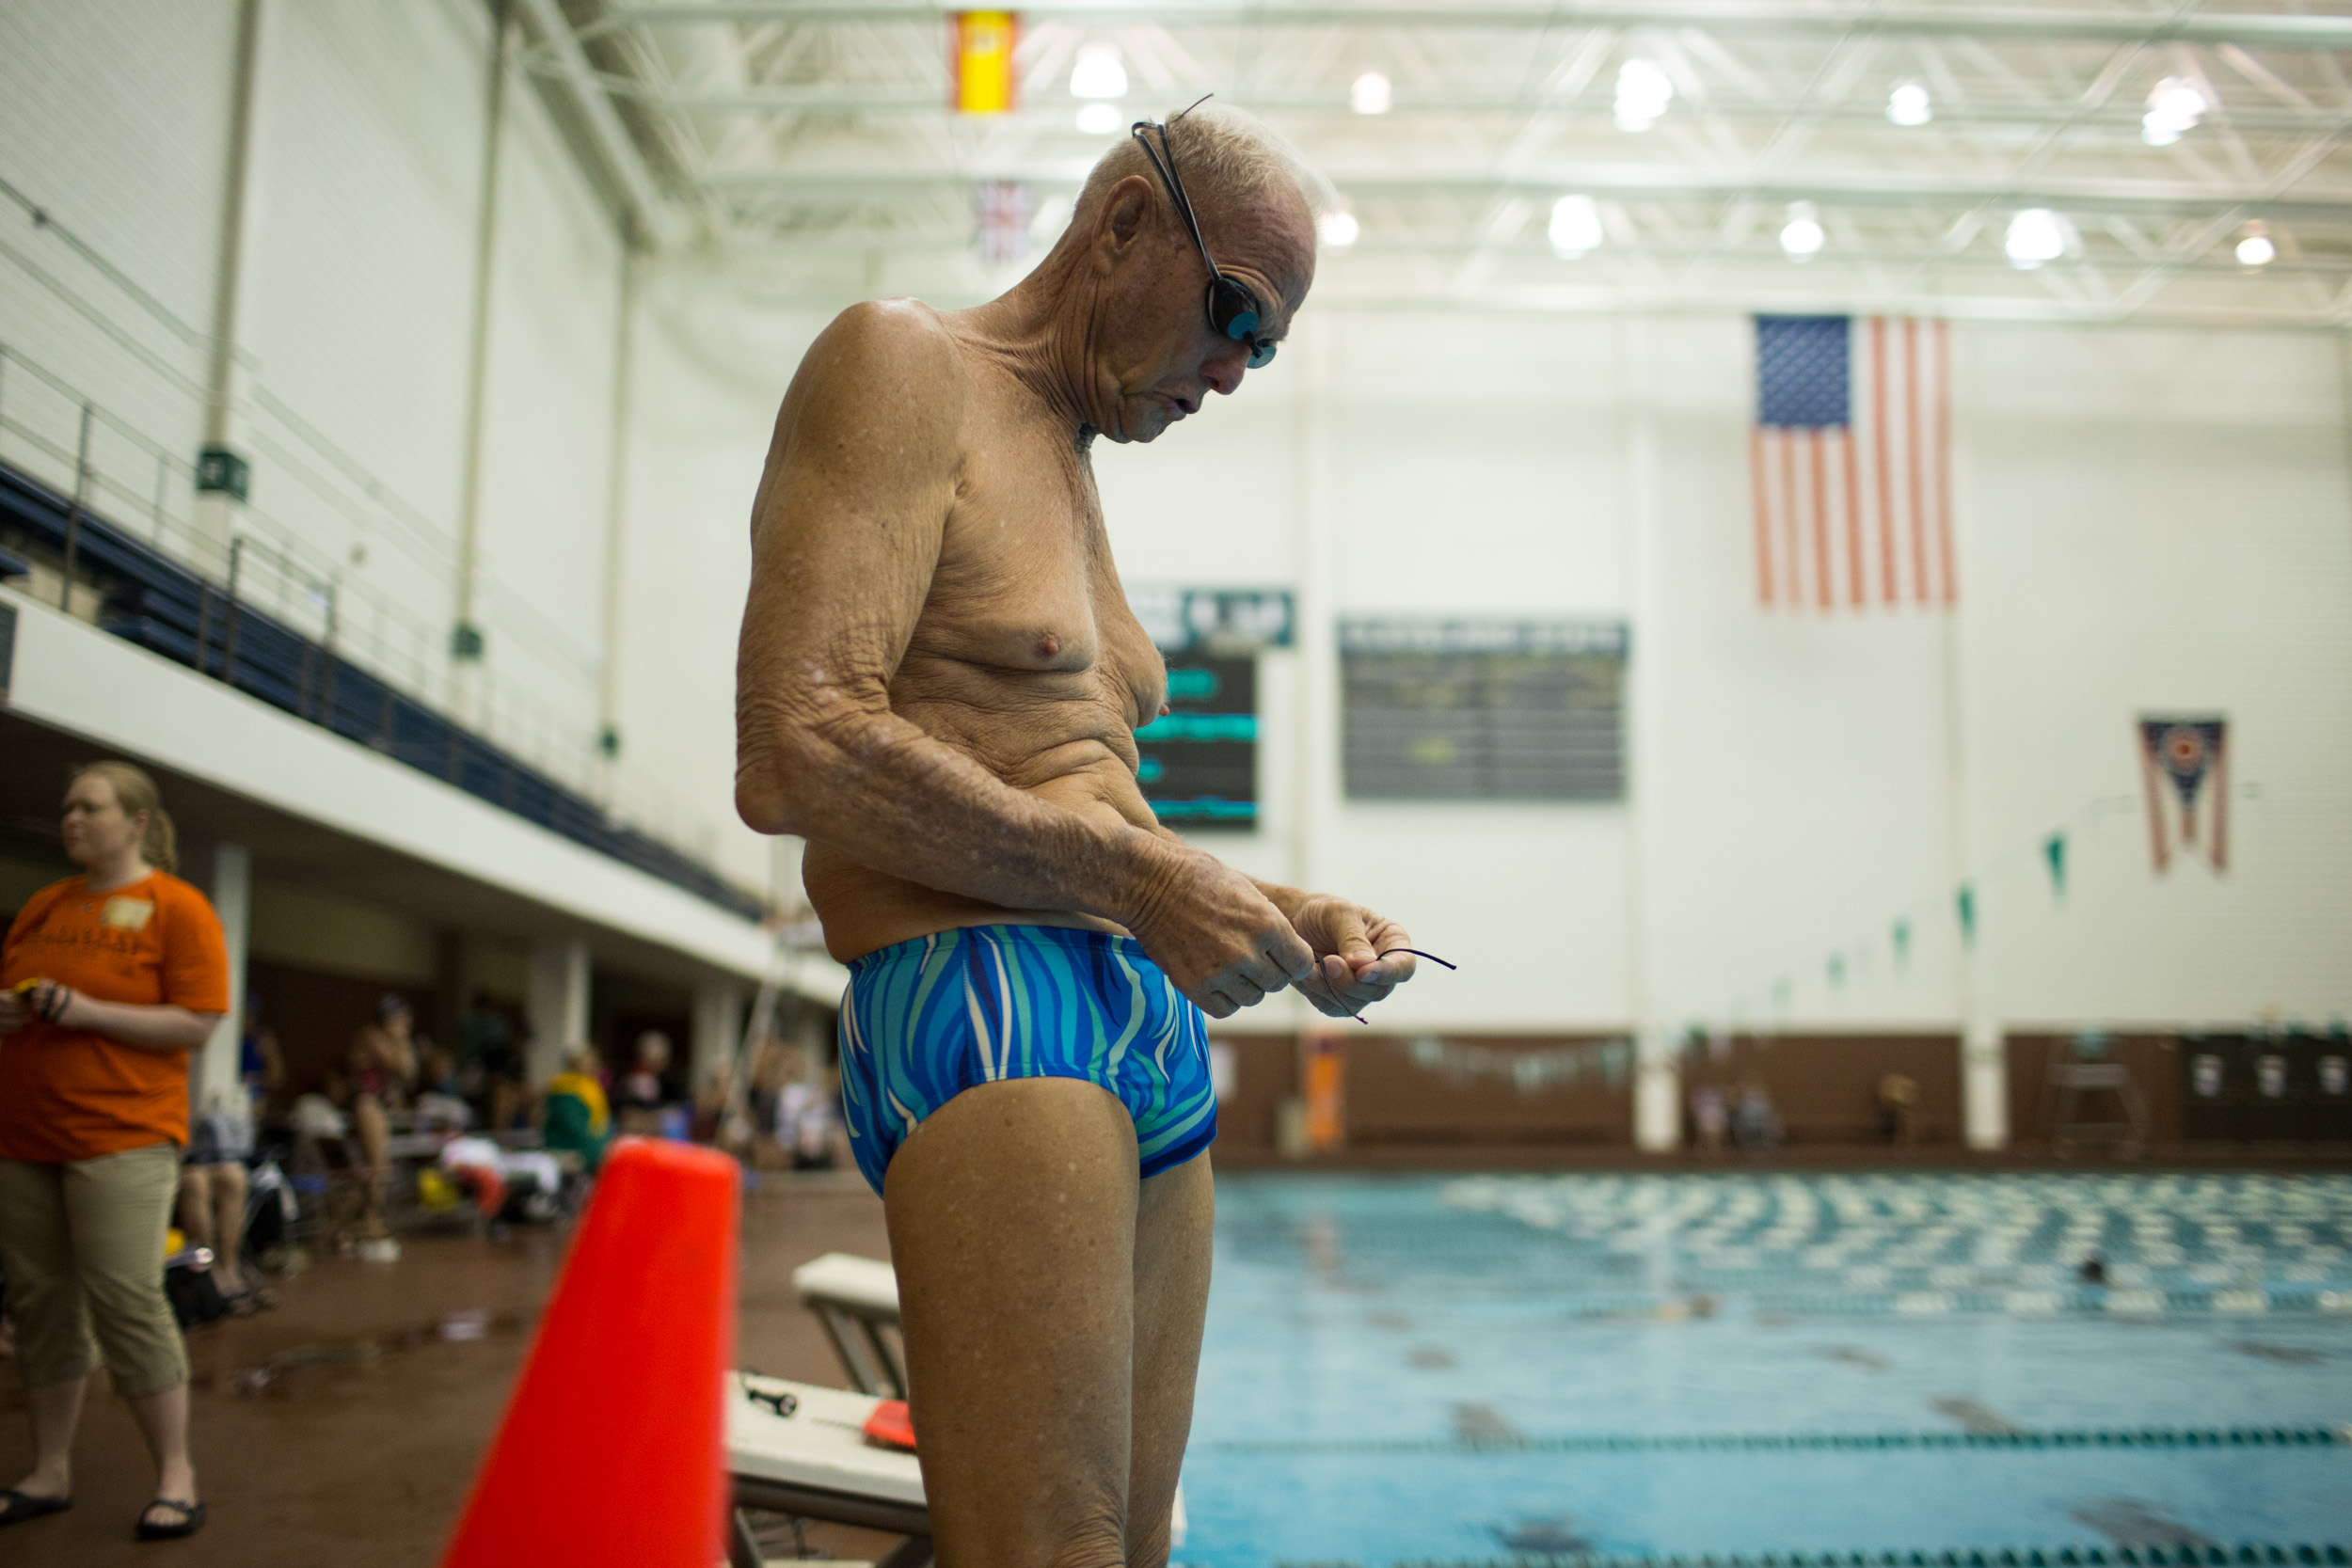 Johnston adjusts his suit before warming up for his events. He started swimming at the age of 2 and now practices five and sometimes six days a week.